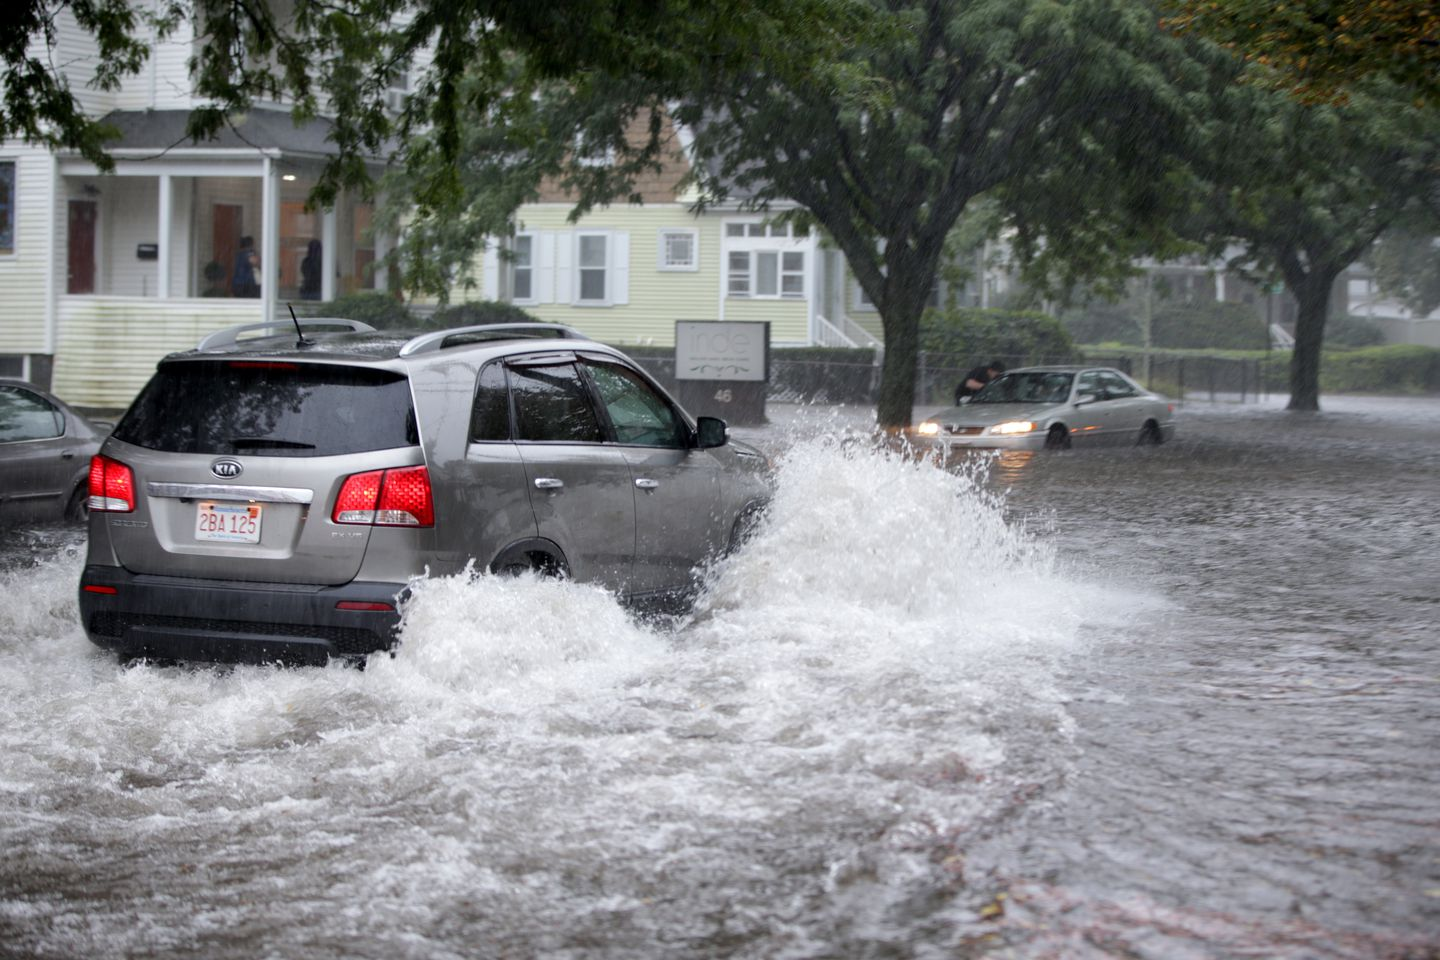 Heavy rain on Independence Avenue in Quincy caused flooding and havoc for some drivers.